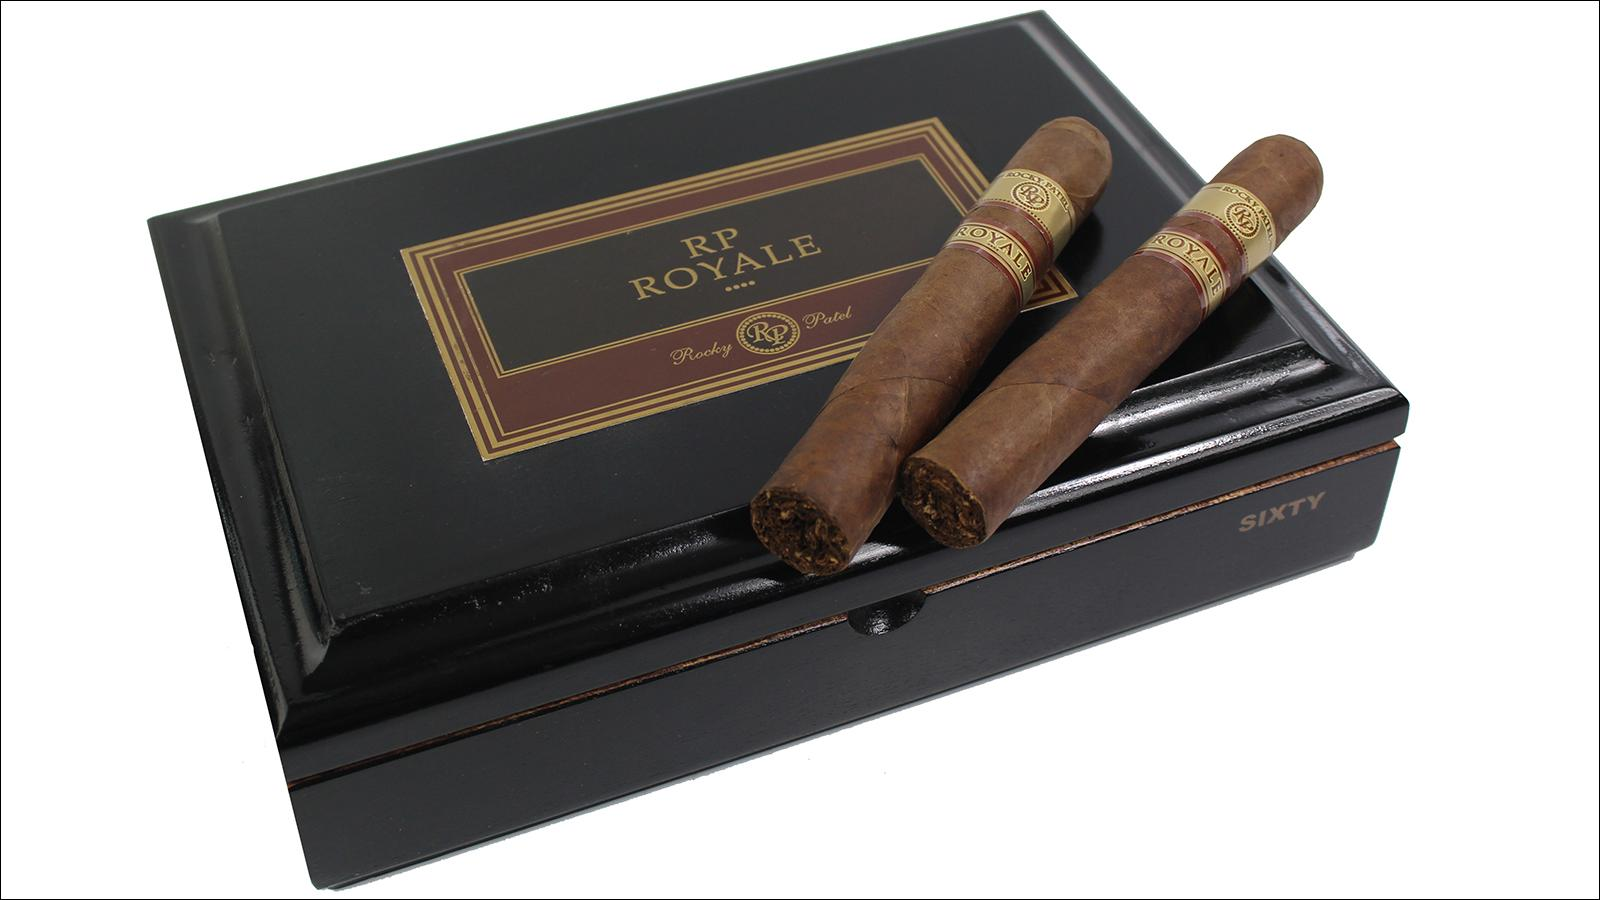 Rocky Patel Adds A Grande To Royale